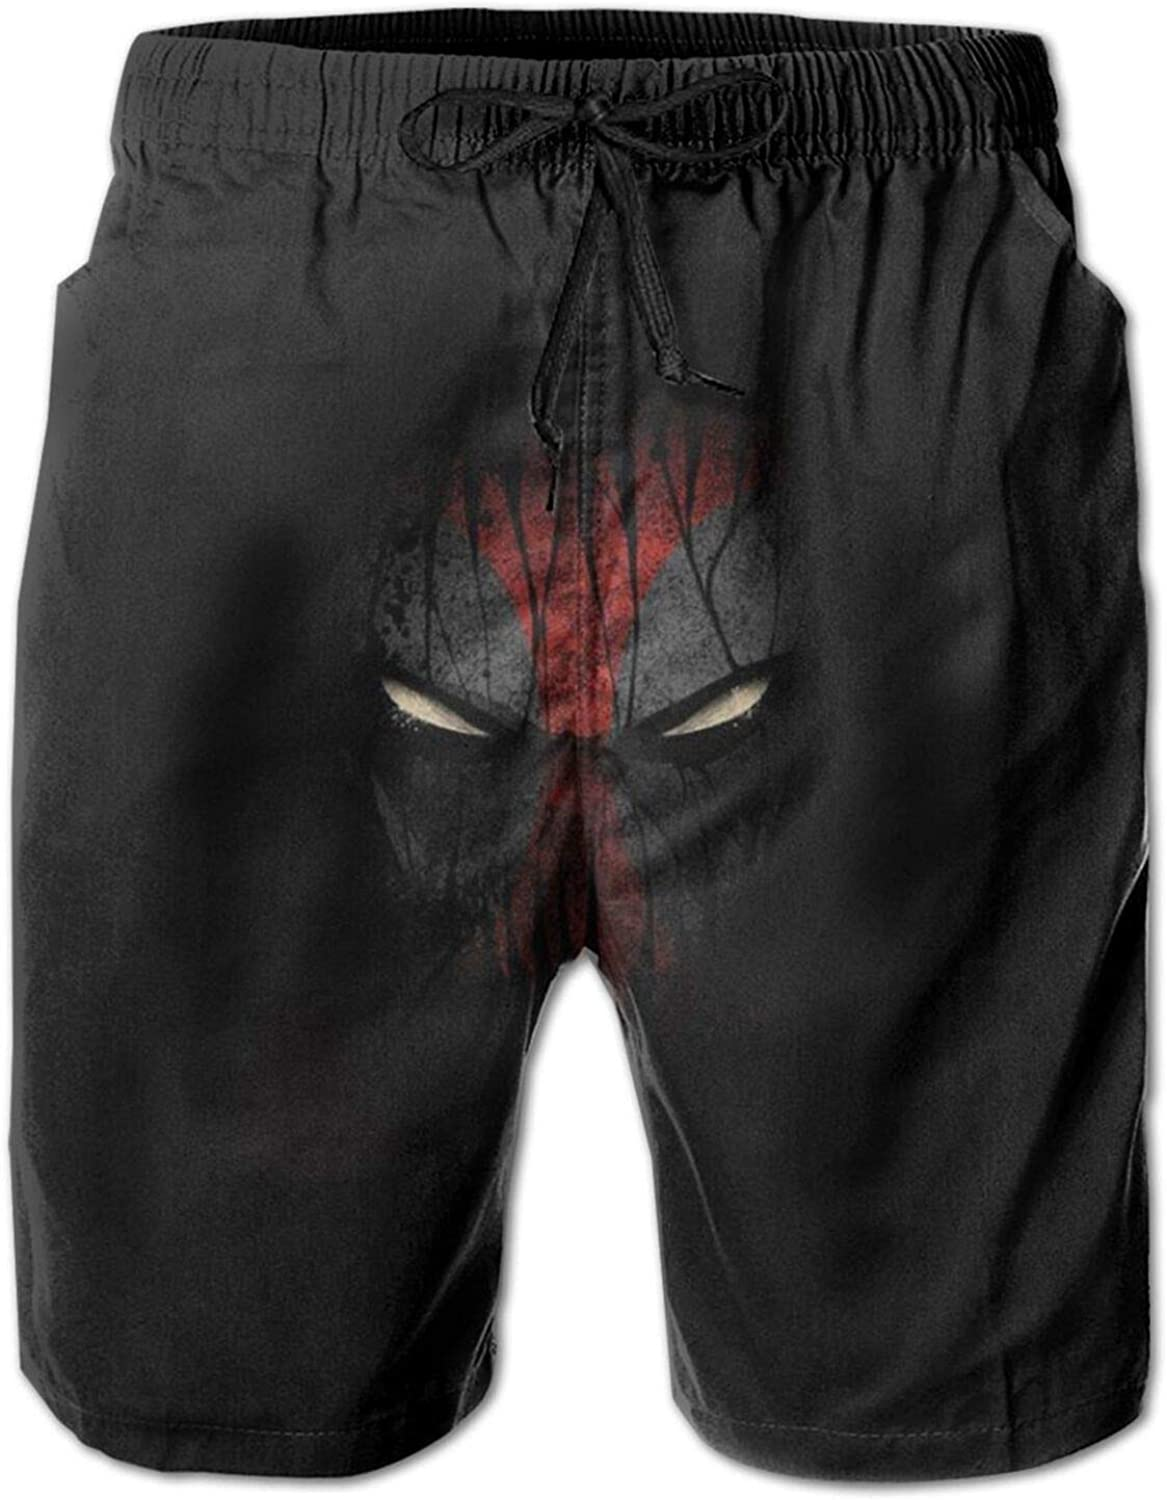 Xoees Deadpool Mens Swim Trunks Shorts Quick Dry with Pockets Mesh Lining for Beach Surfing Homewear Fitness.